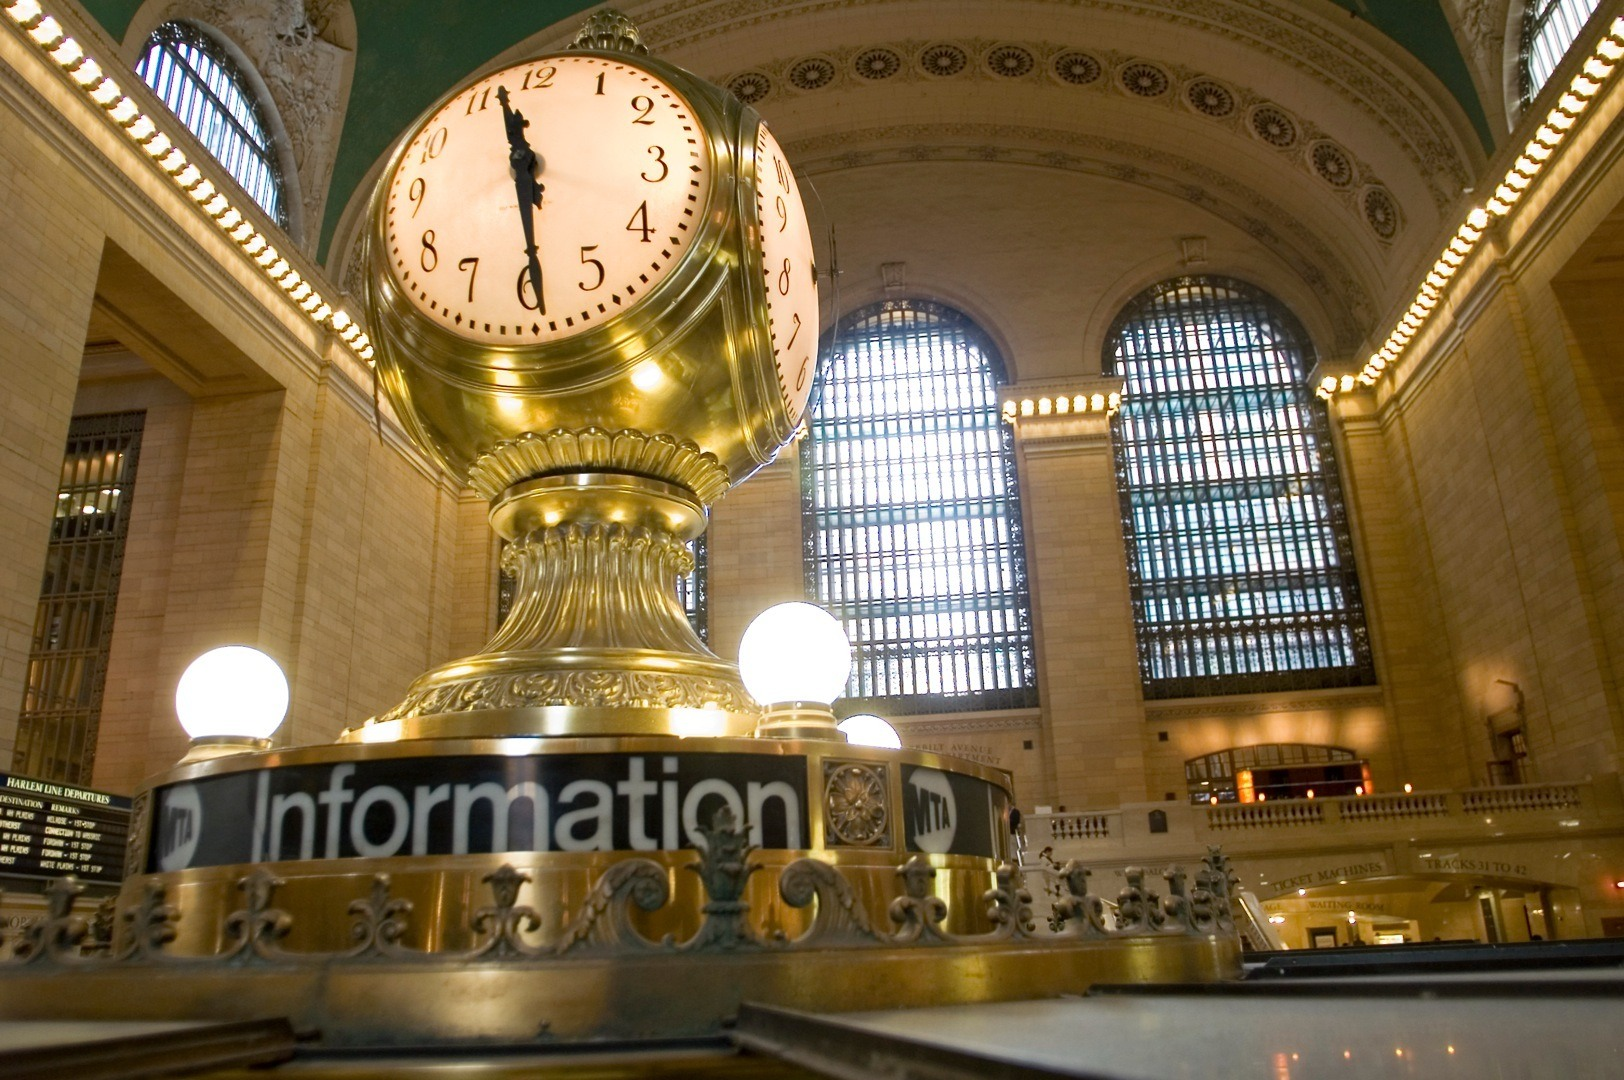 Check Out These Awesome Photos Of Grand Central Terminal